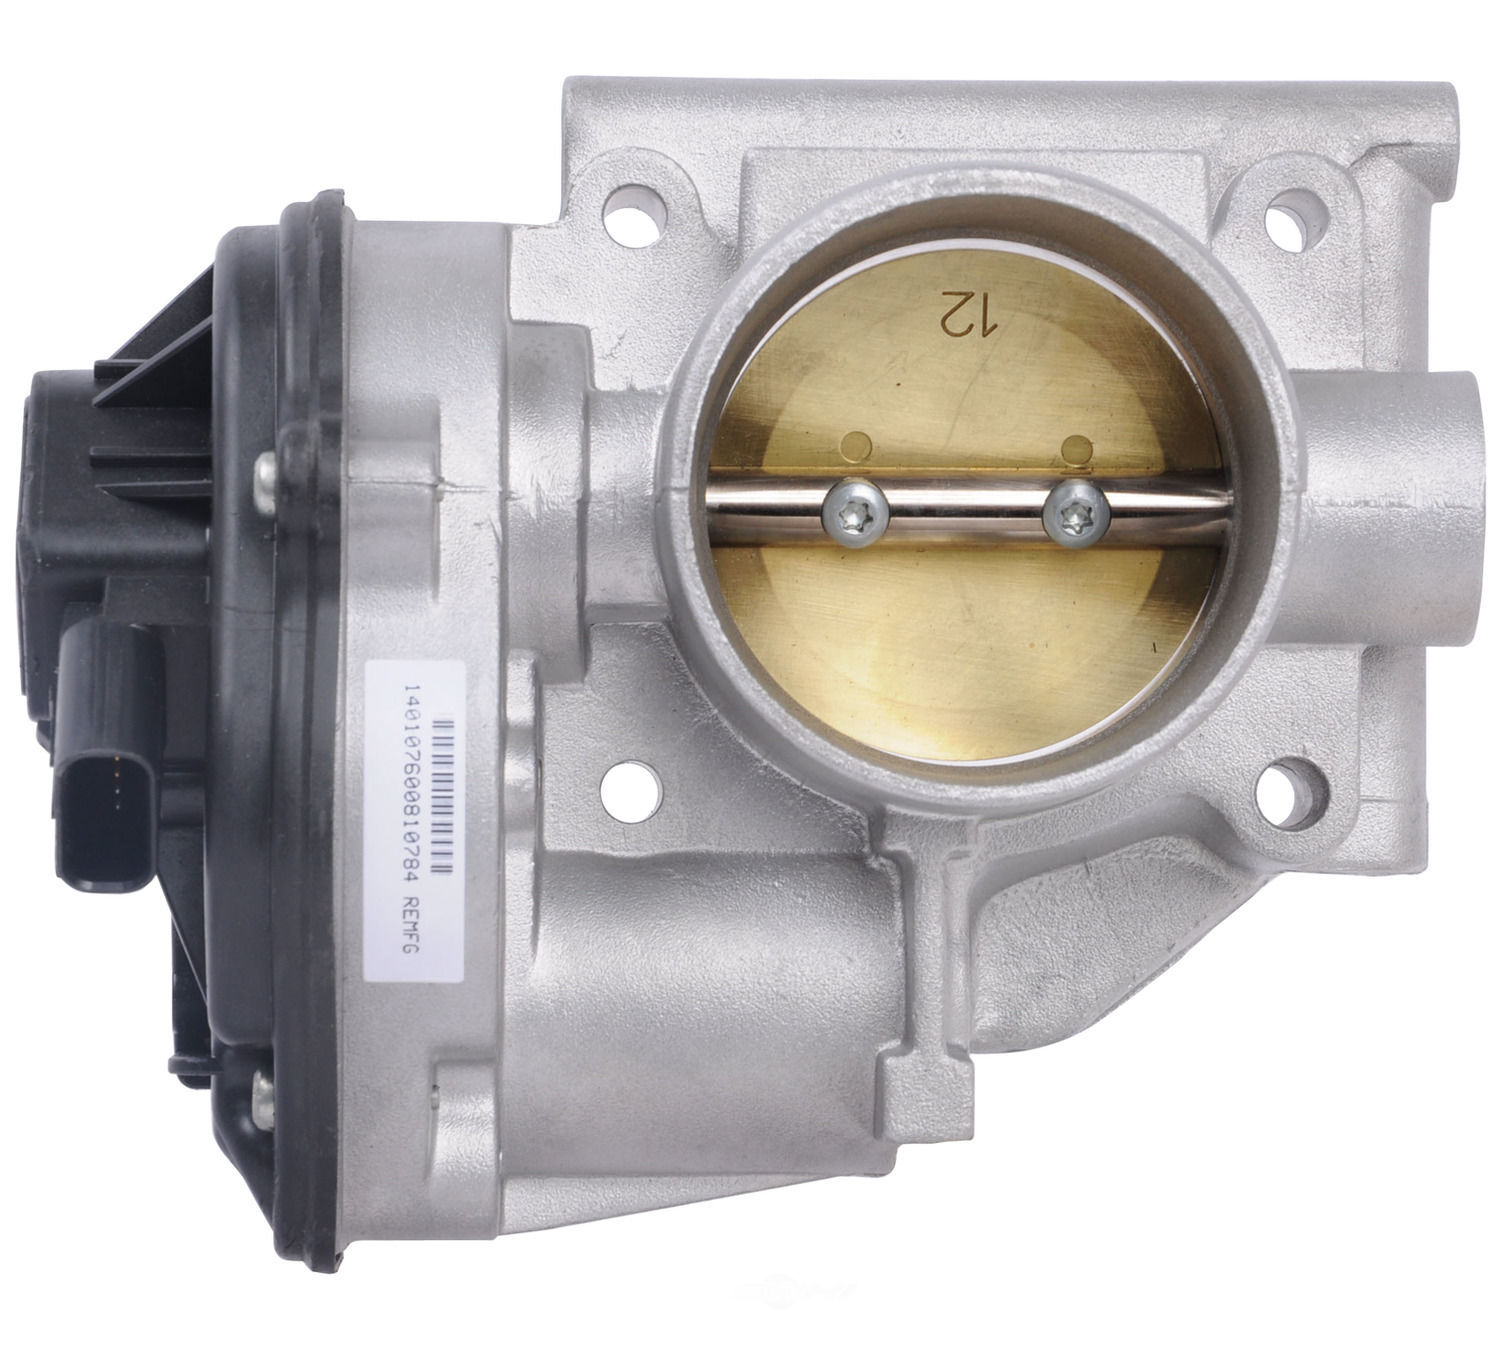 CARDONE/A-1 CARDONE - Remanufactured Throttle Body - A1C 67-6008